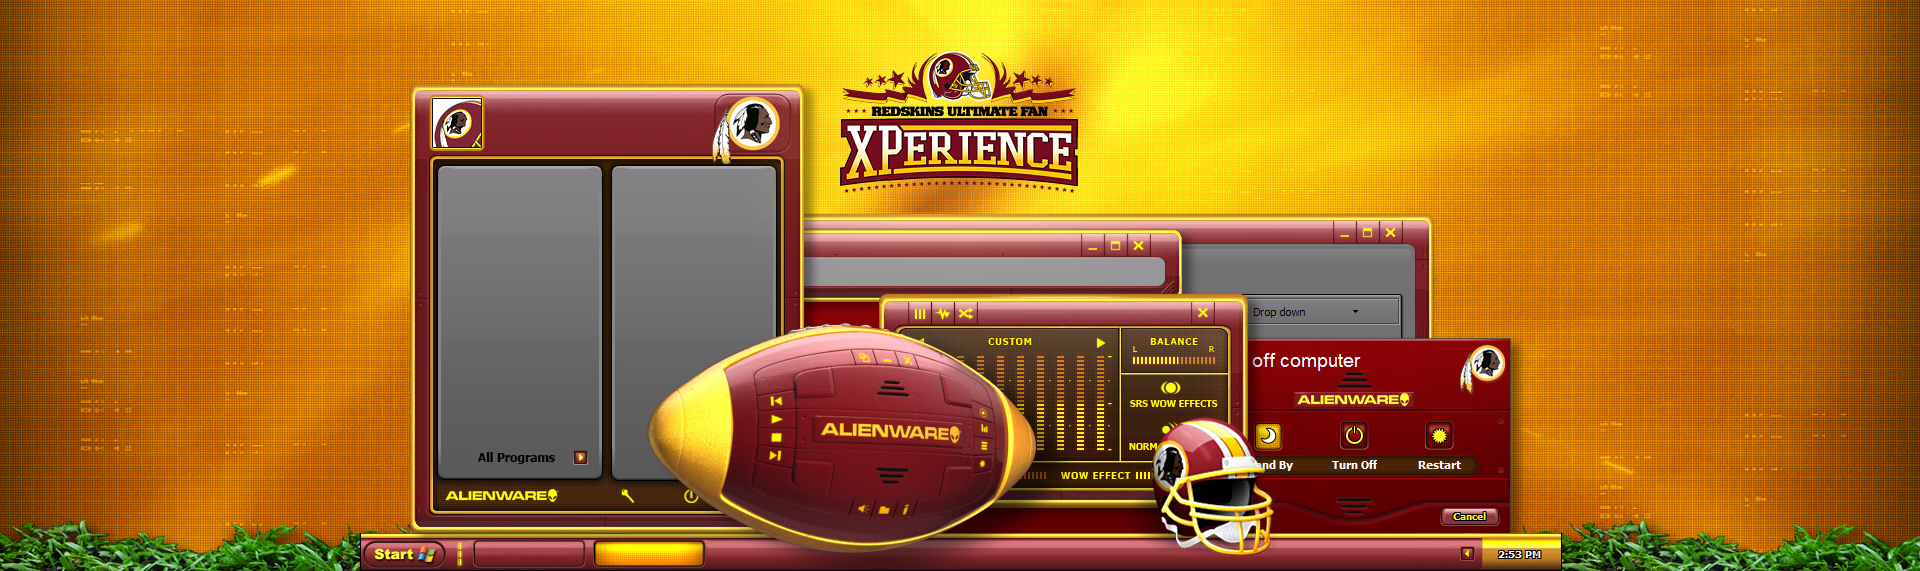 Alienware: Redskins Ultimate Fan Xperience  Client: Alienware Corporation + Washington Redskins  The Redskins Ultimate Fan XPerience exclusive desktop theme includes customized icons and wallpapers to go along with a media player transformed into a 'technology enhanced' football. The Window theme transforms your ordinary Windows XP into a Redskins fan's delight. Available only when you purchased the Washington Redskins Ultimate Fan XPerience PC. Copyright. Alienware Corporation. Copyright. Washington Redskins.